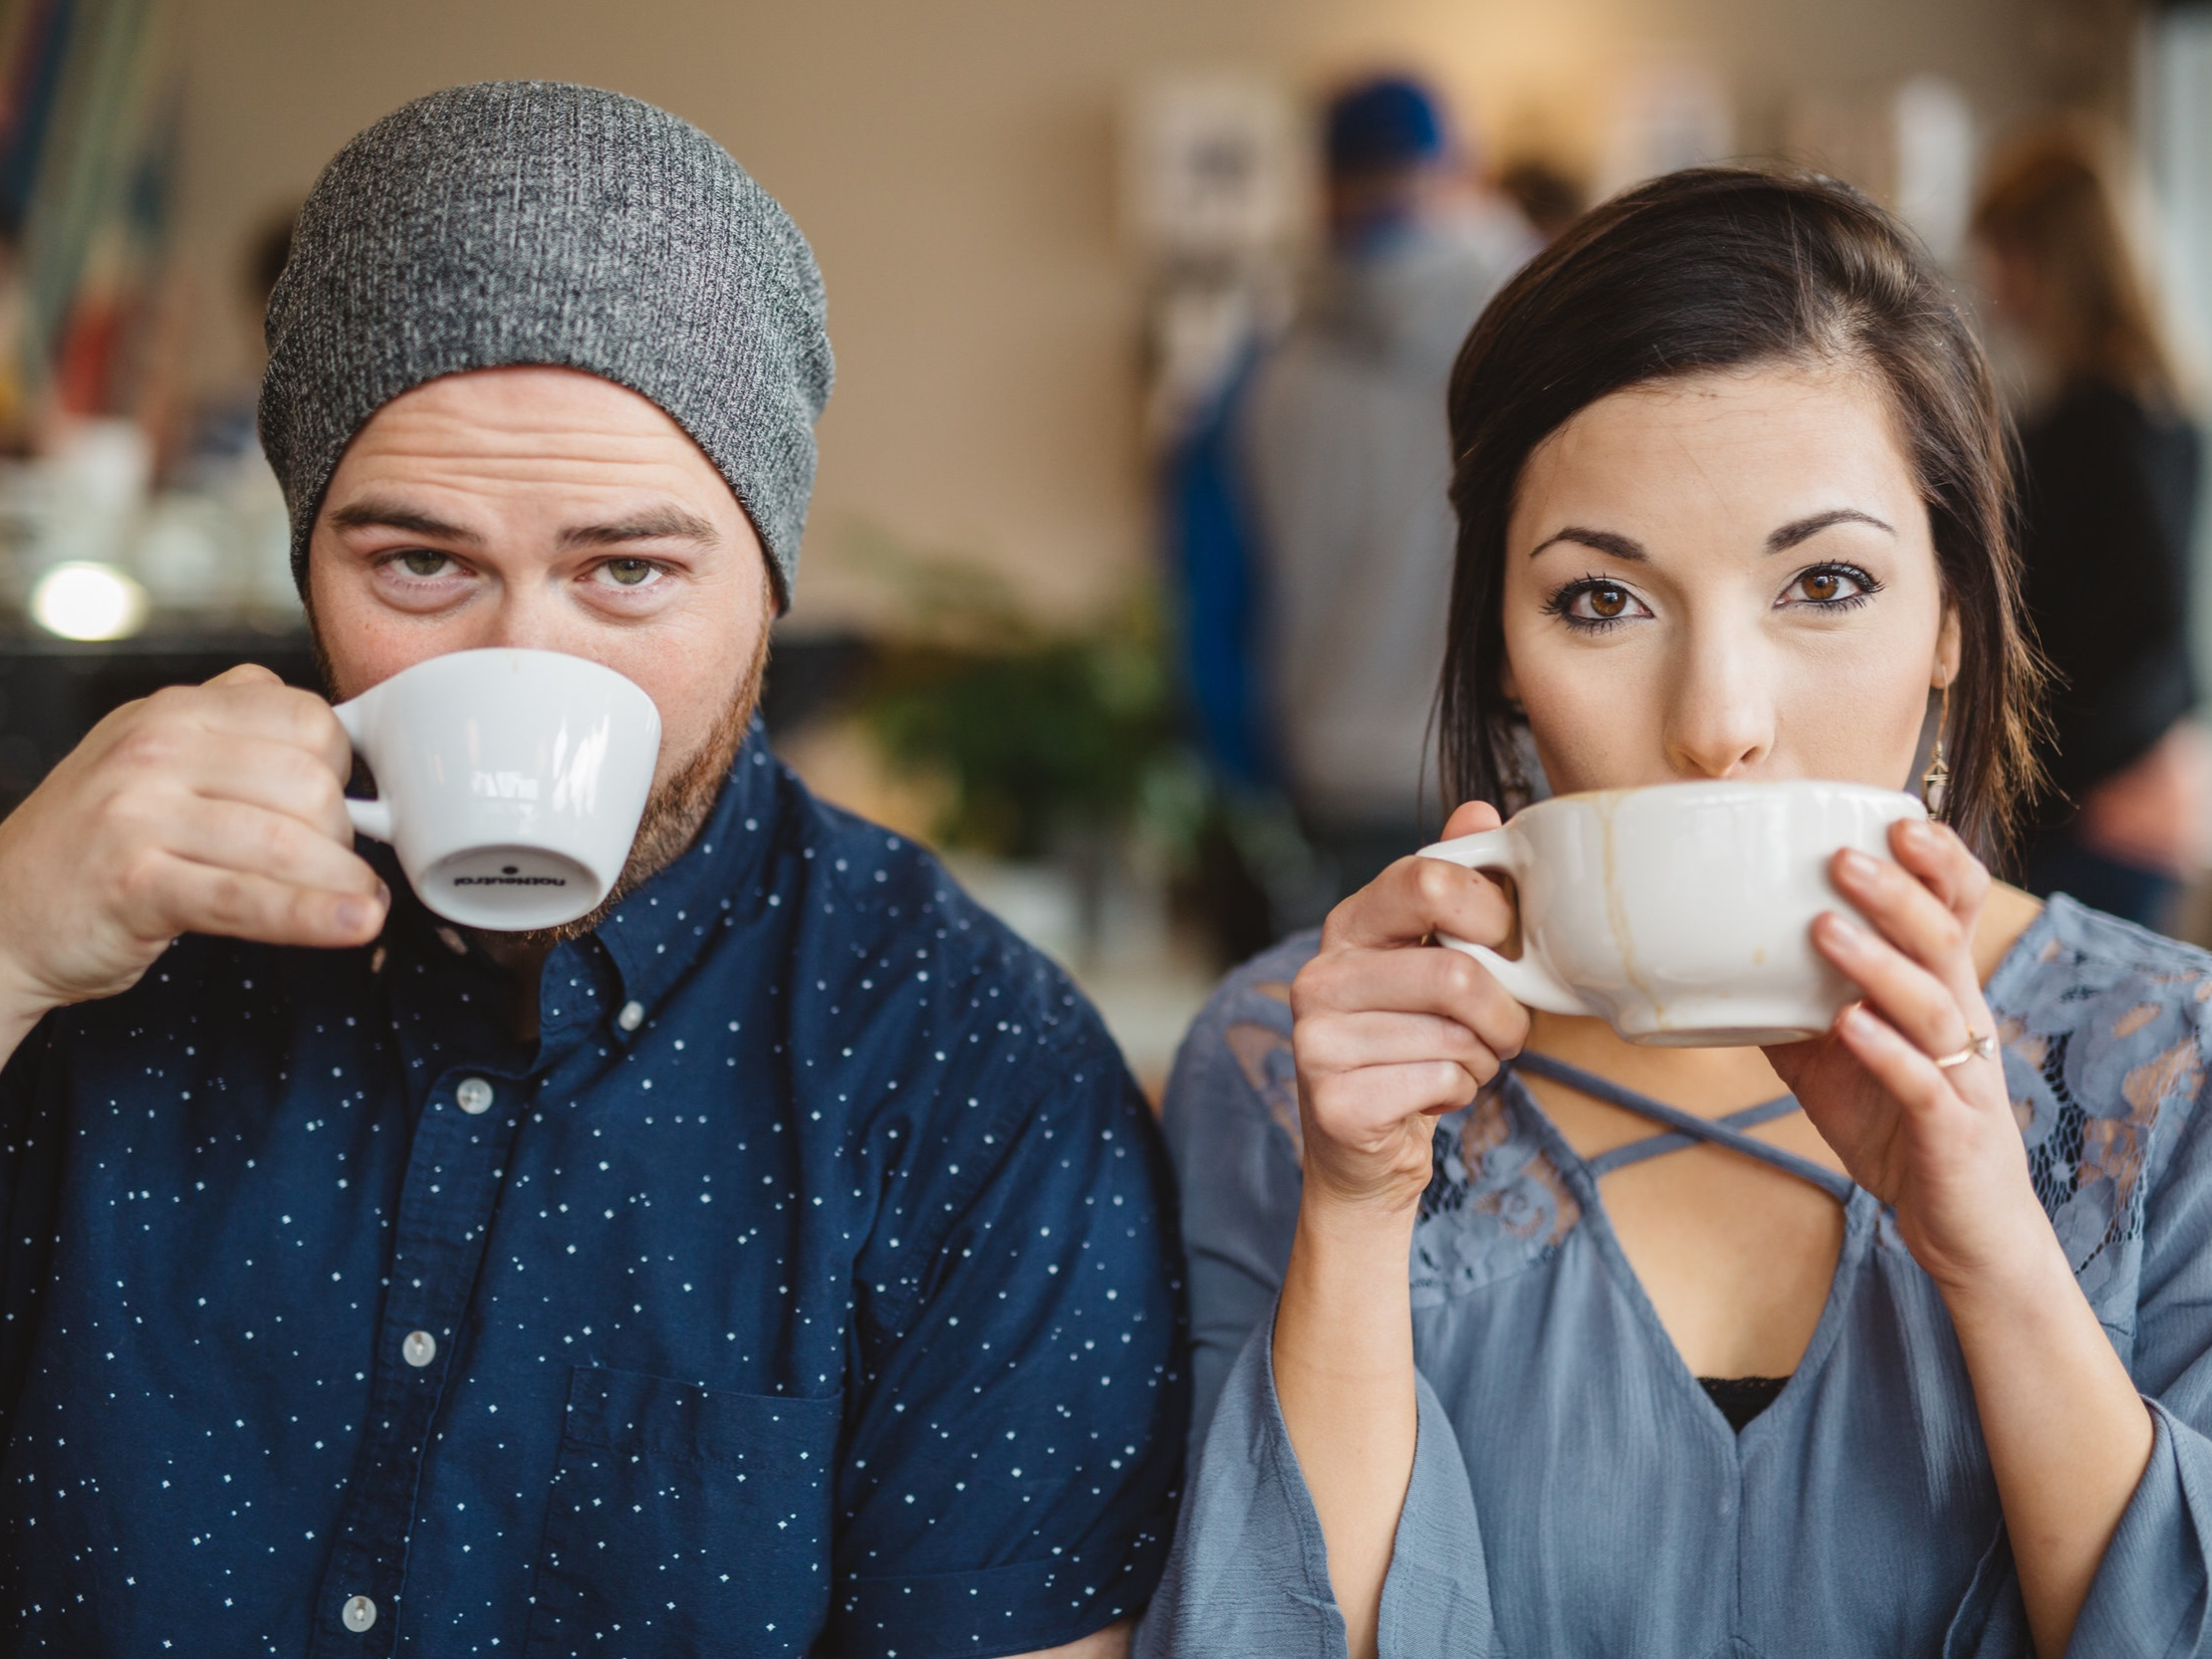 young-couple-drinks-coffee-together-while-sitting-an-a-coffee-shop_t20_a8jKPY.jpg